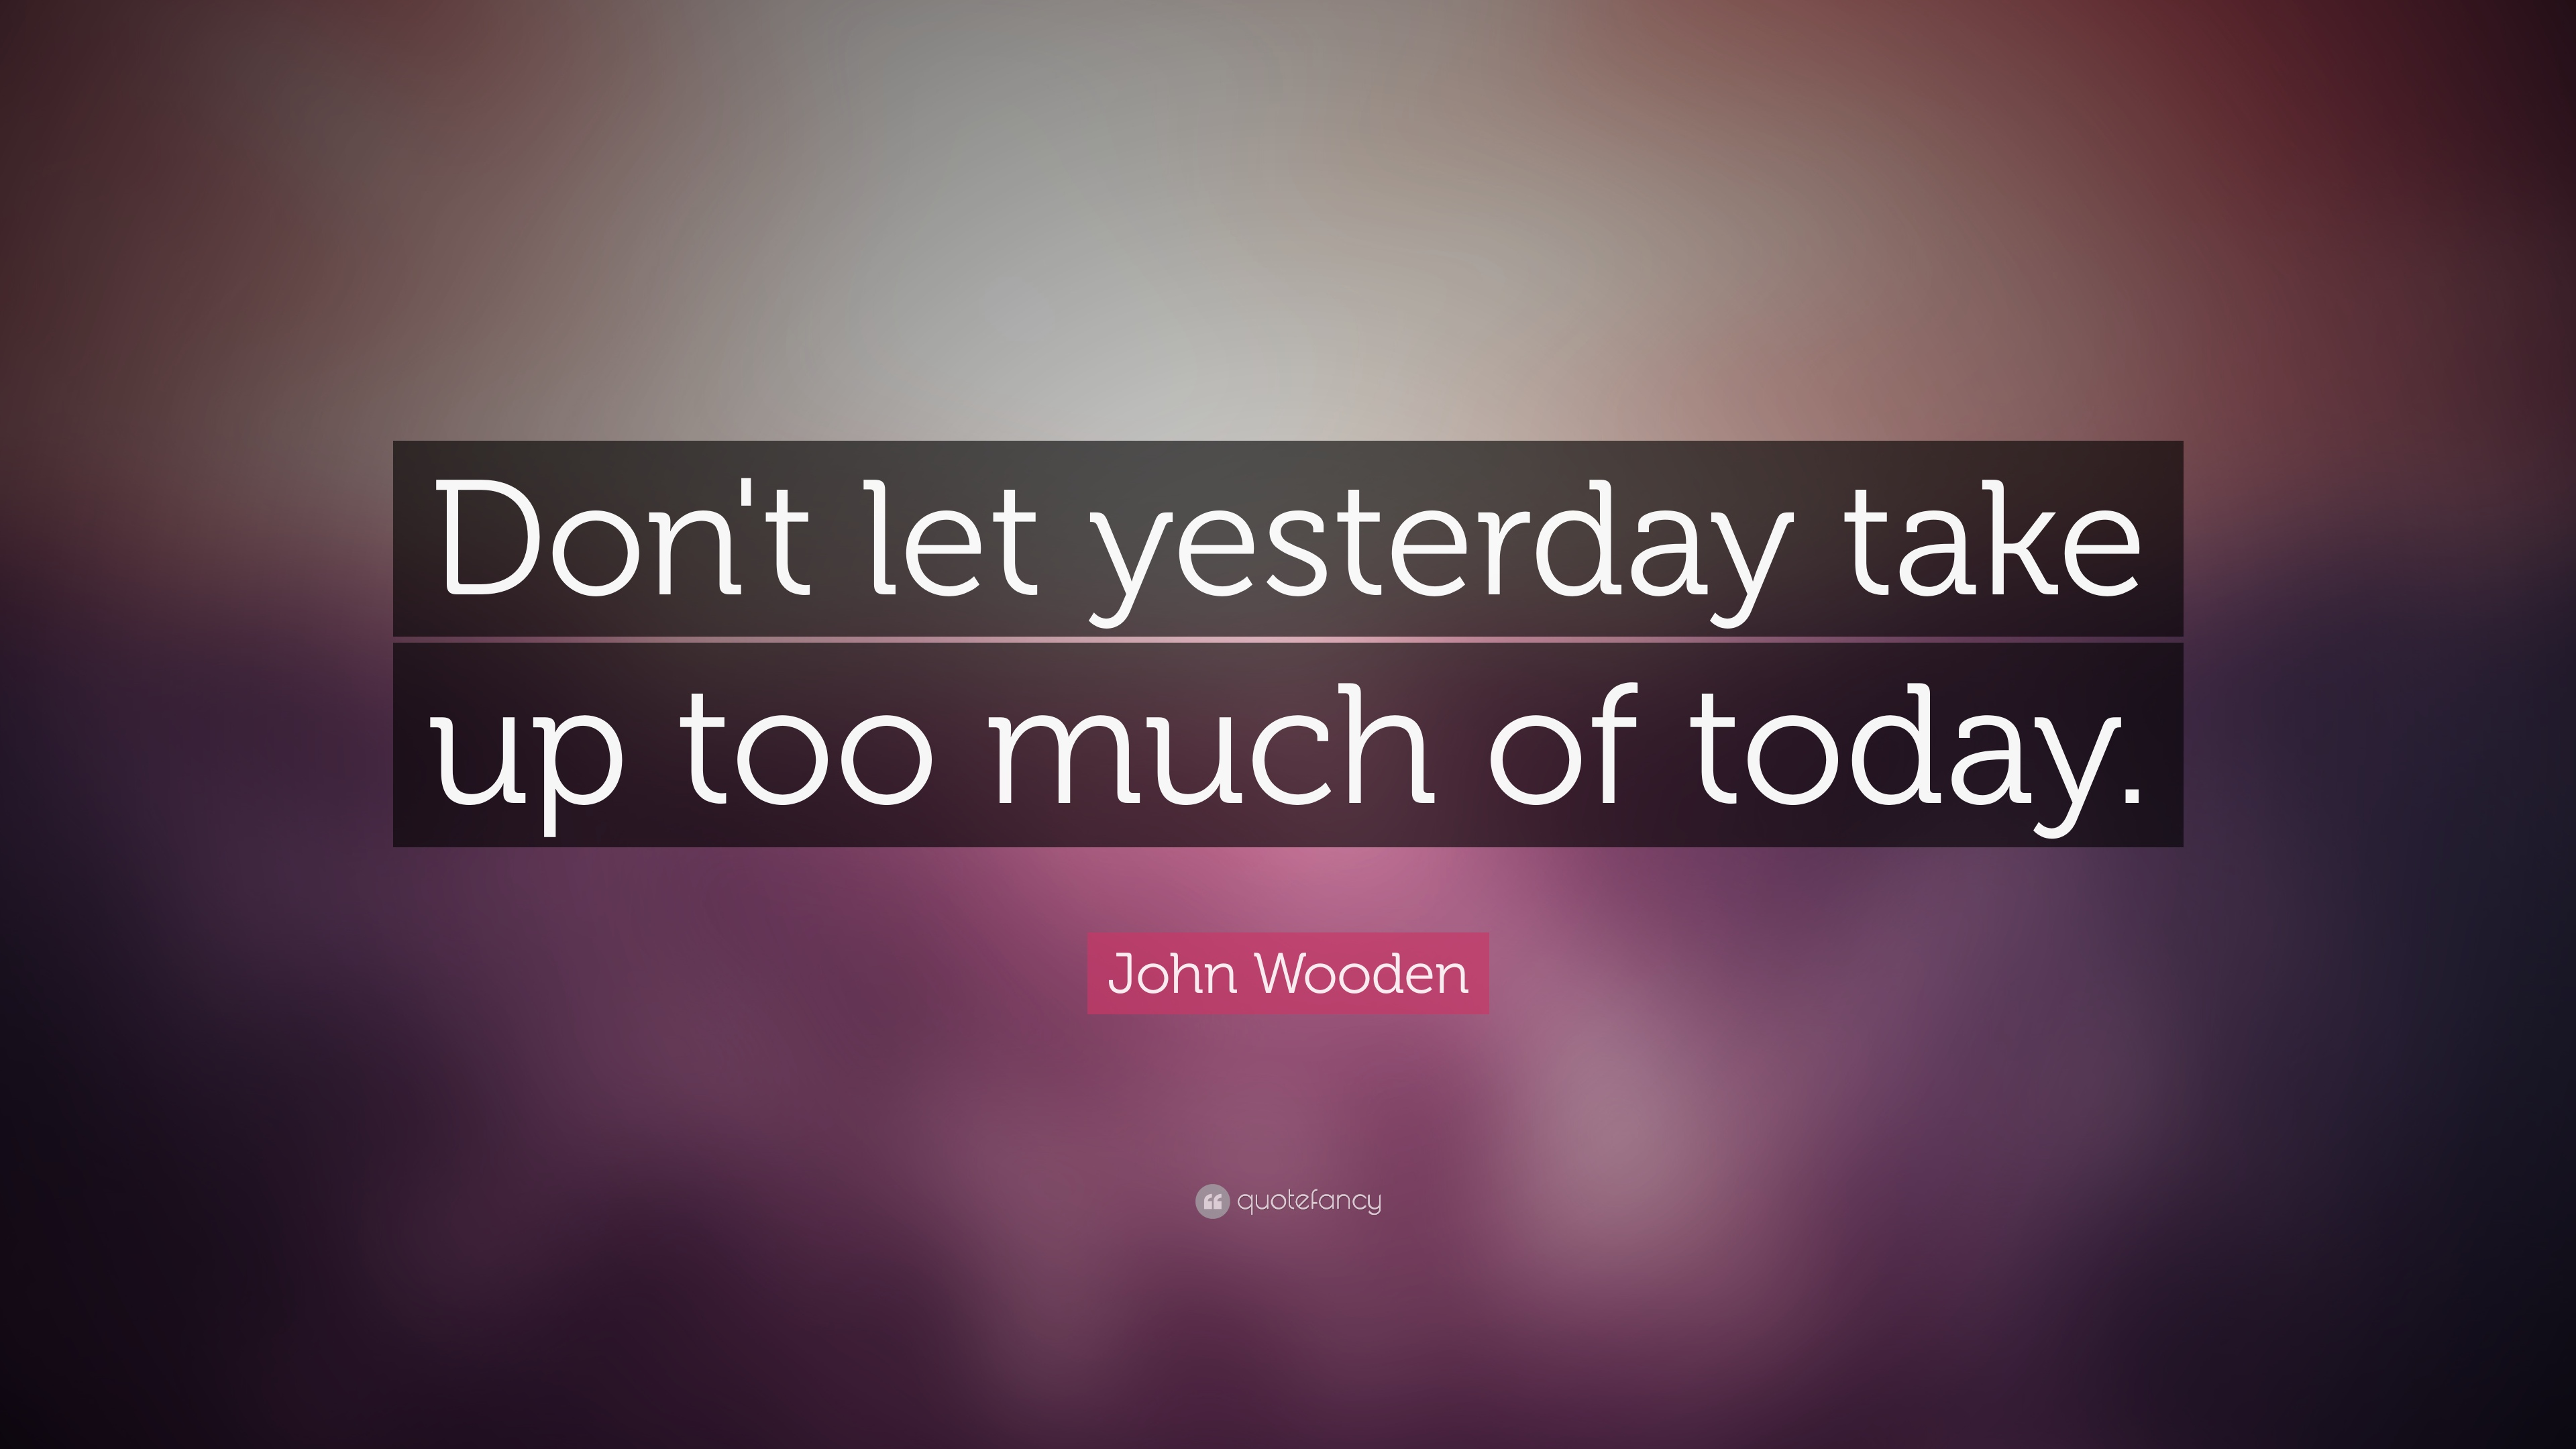 John Wooden Quote: Dont let yesterday take up too much